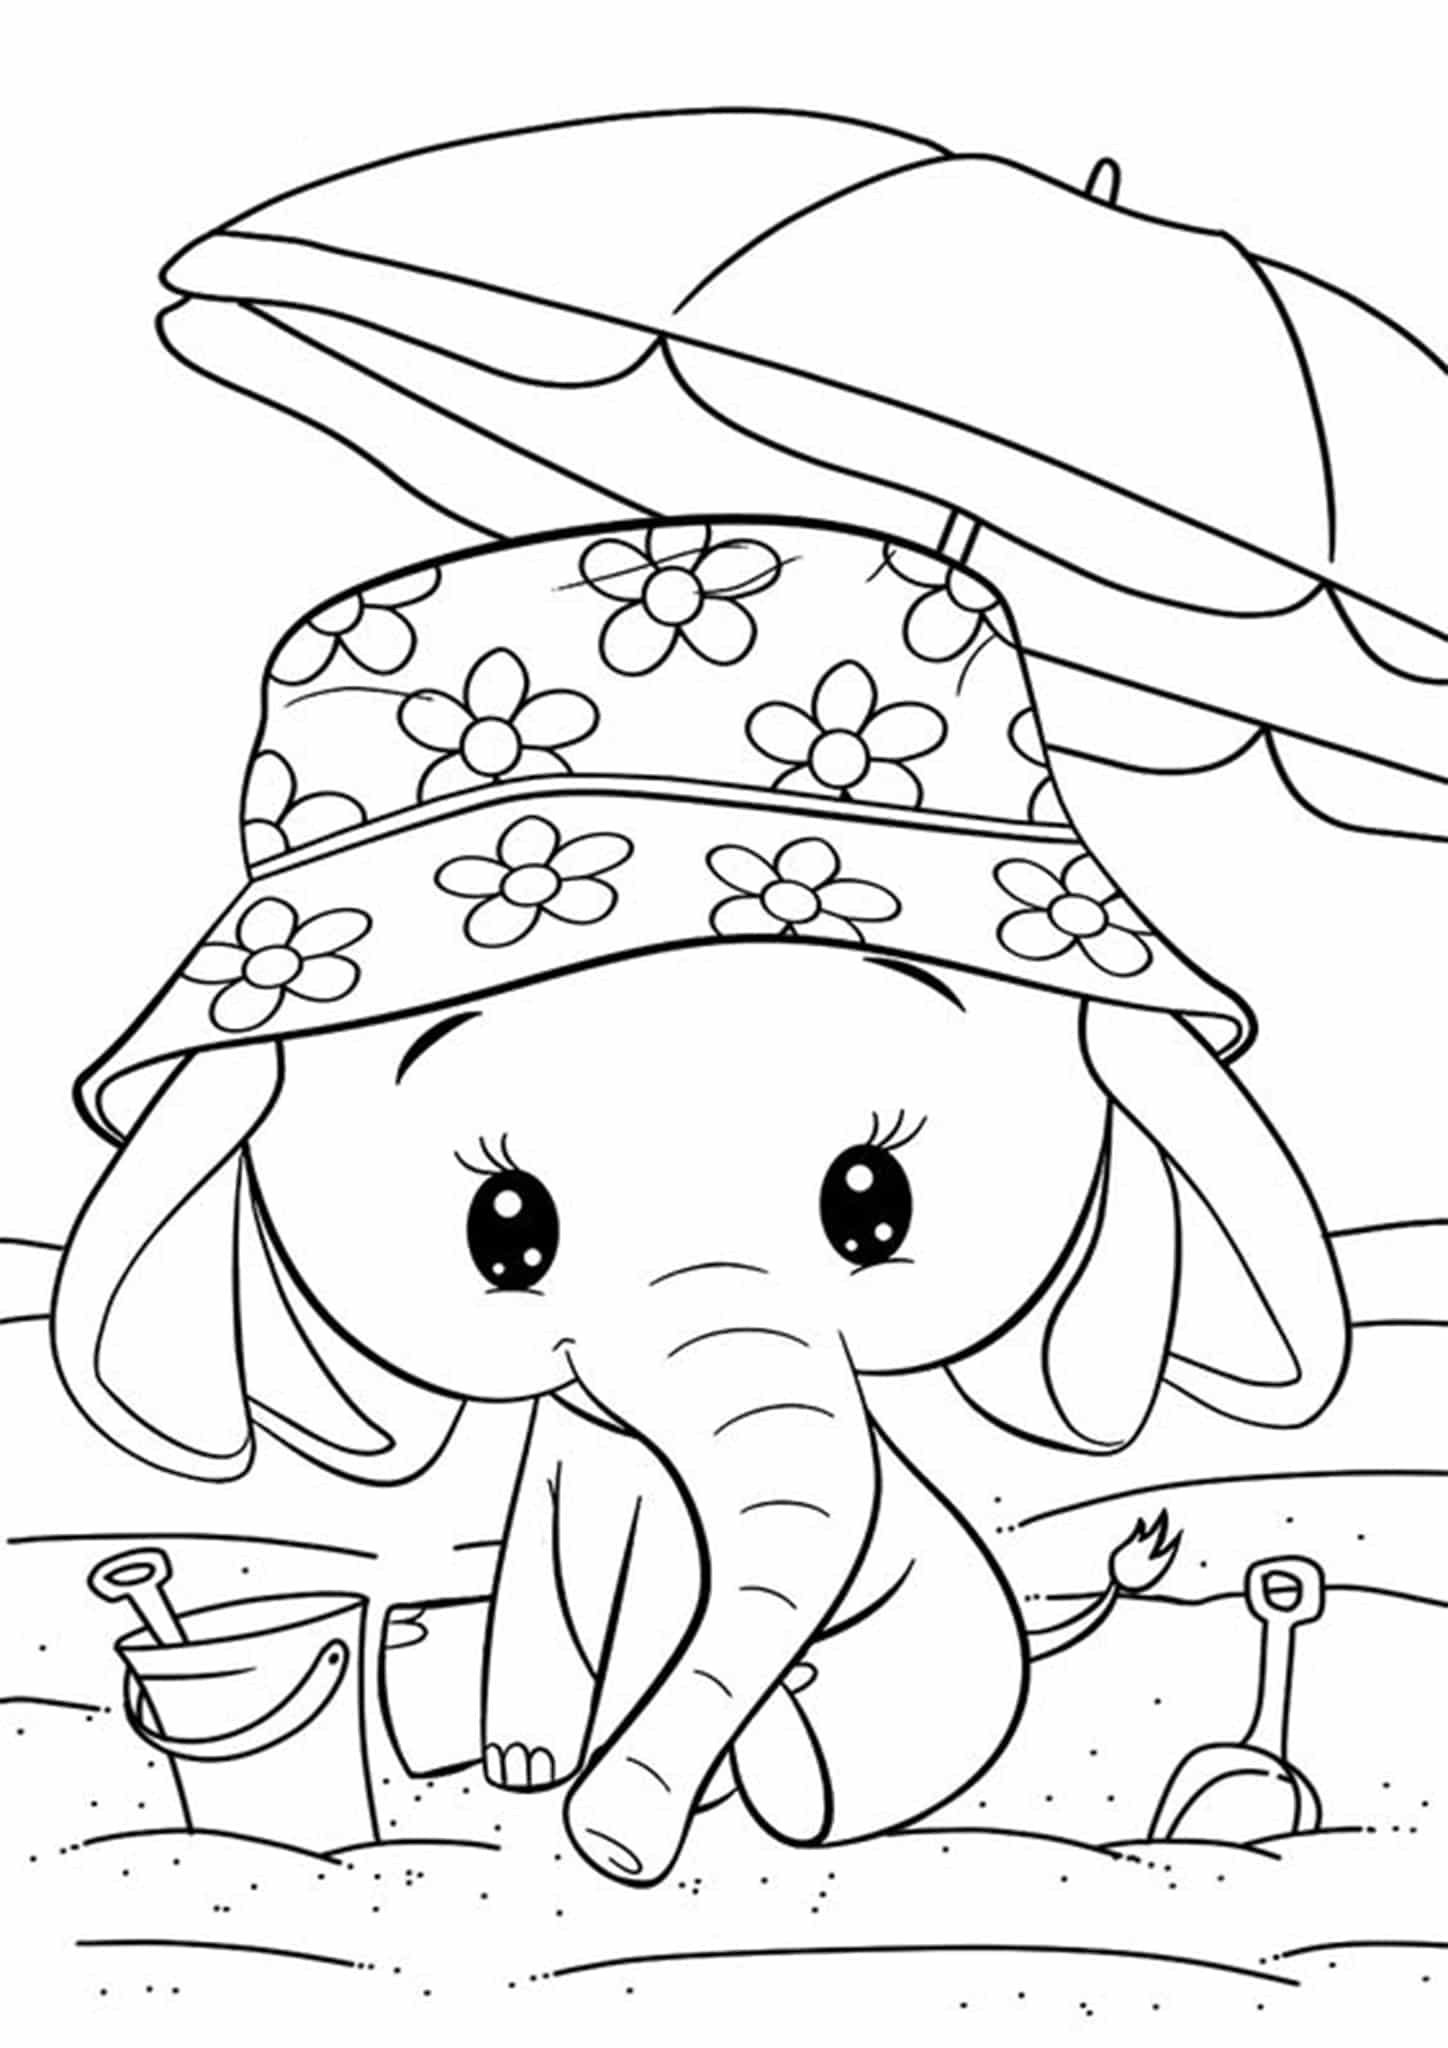 colouring pictures of elephant free easy to print elephant coloring pages tulamama elephant colouring of pictures